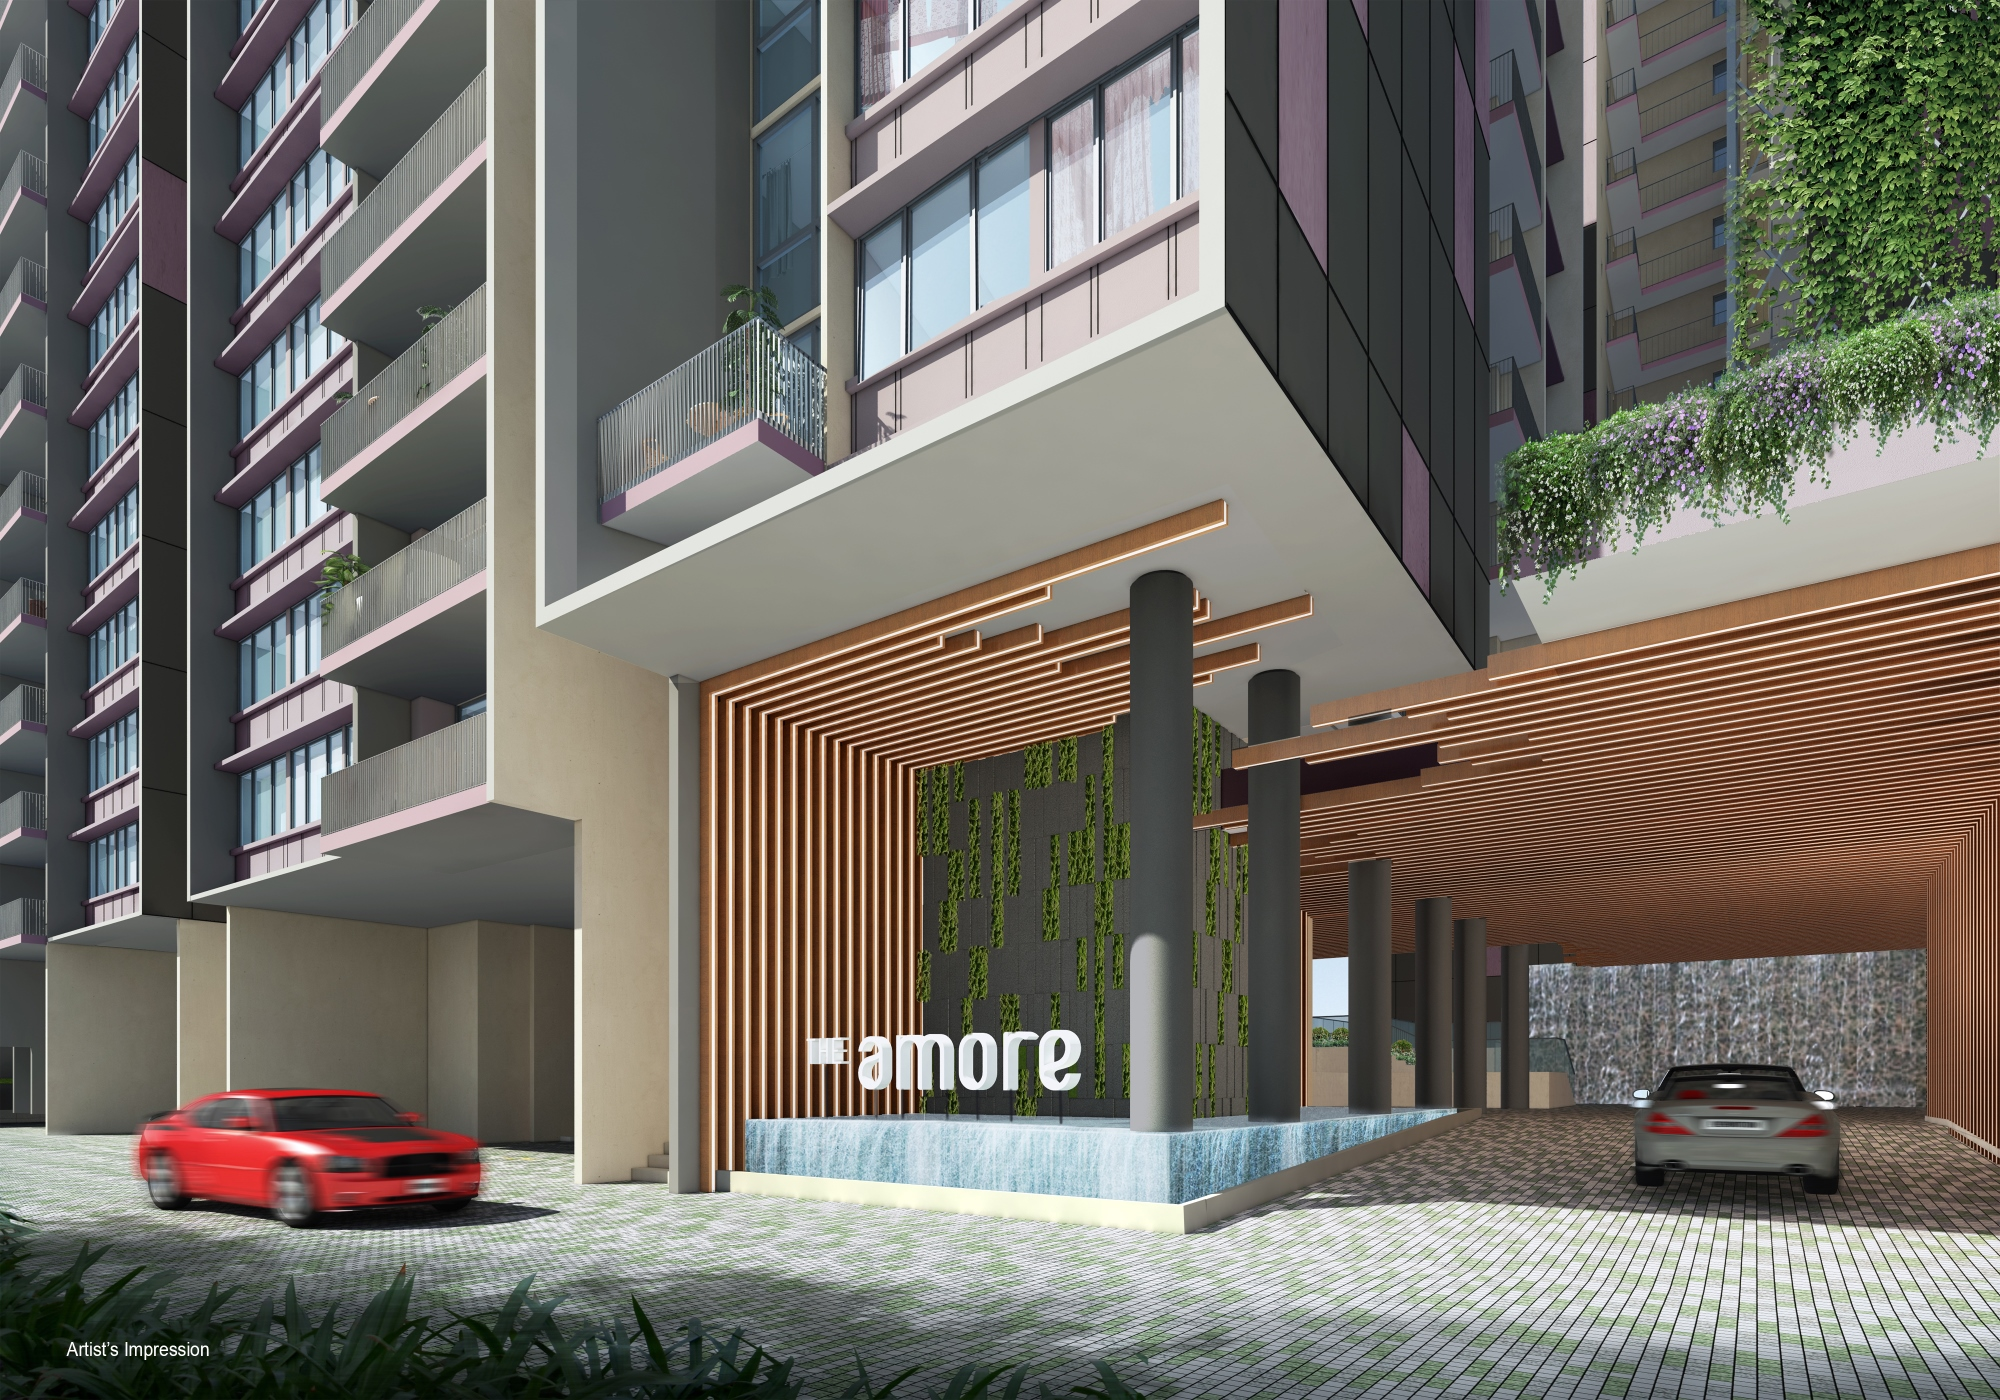 Best EC Singapore Website - Features The Amore EC, EC in Singapore, About Singapore EC, Eligibility for EC, E-Application and Singapore EC News.